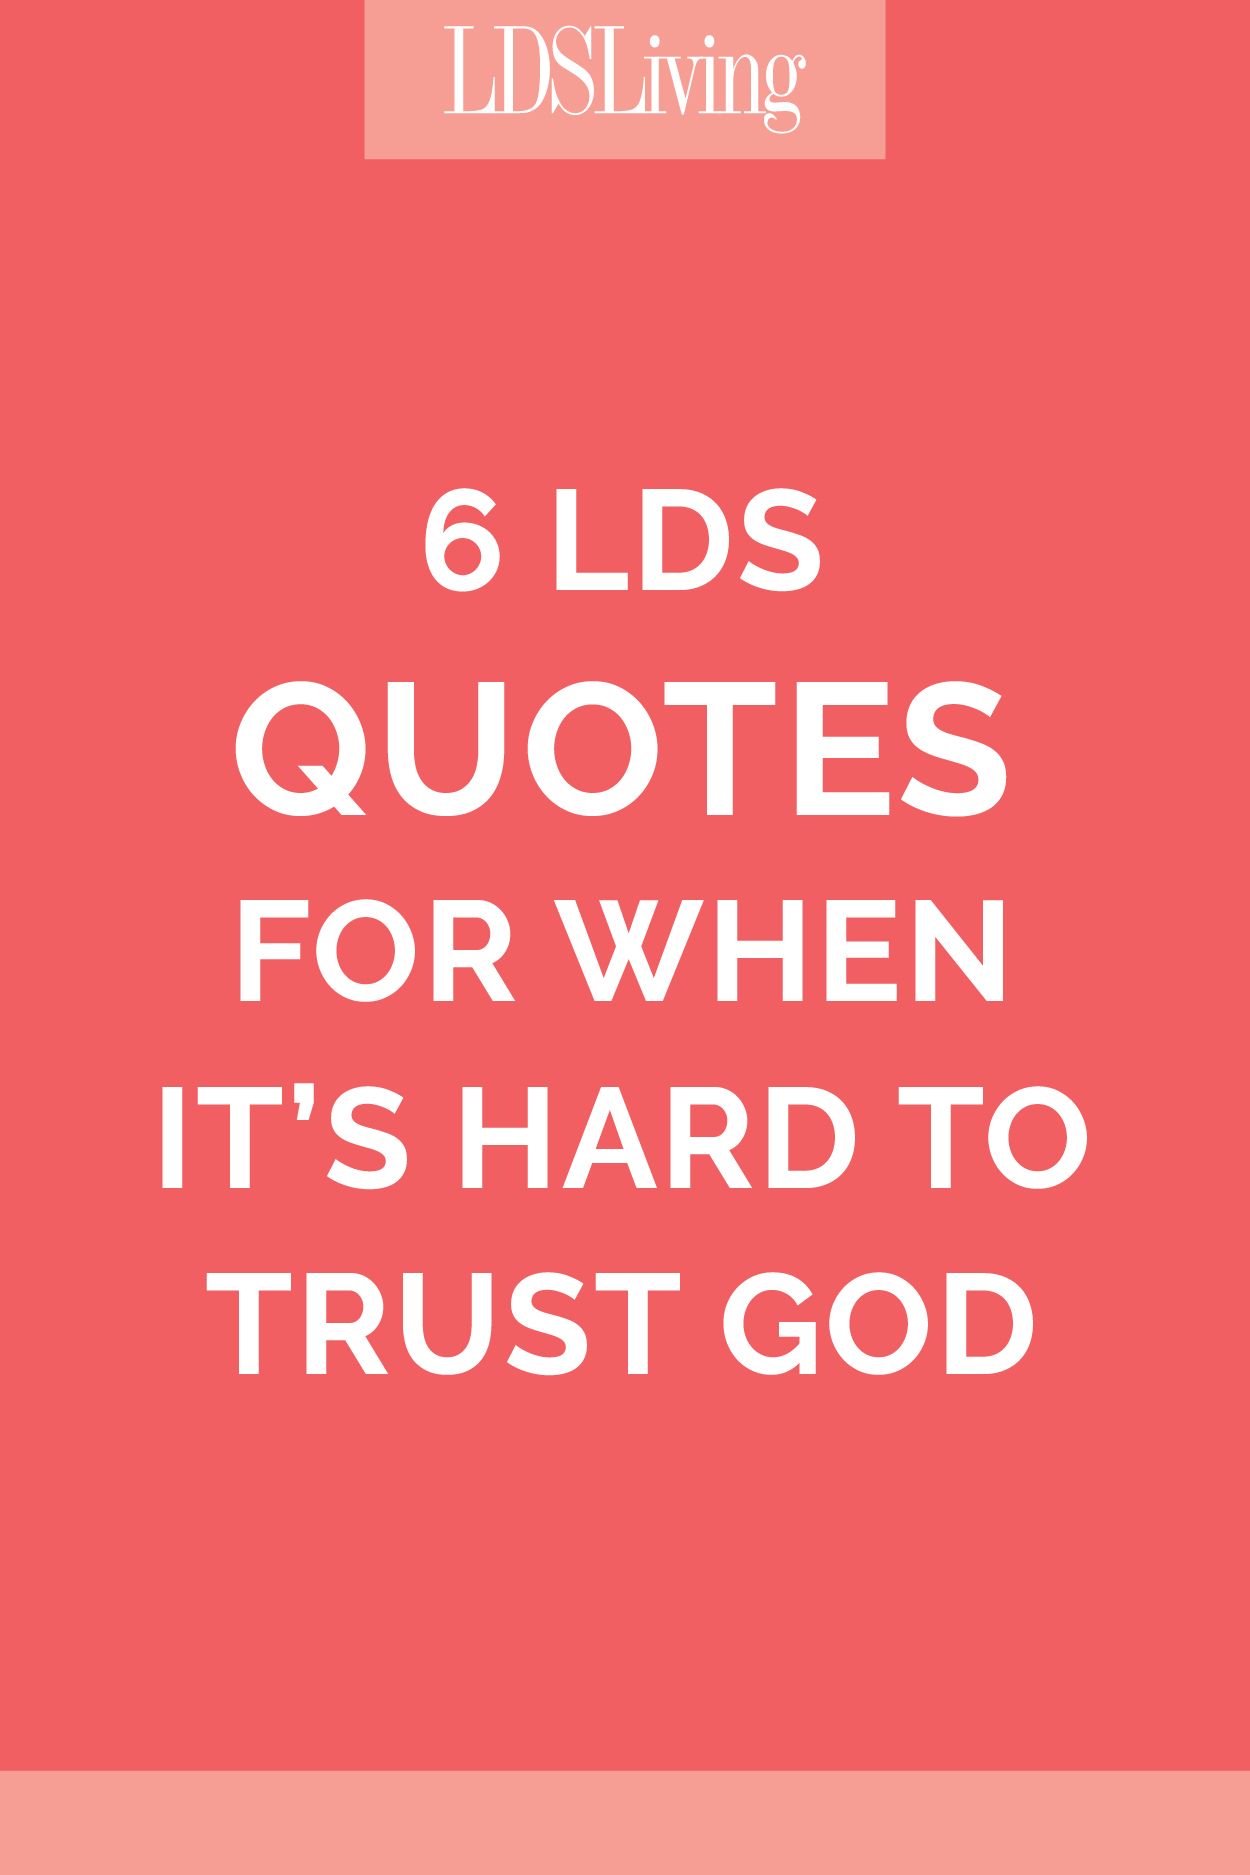 God Quotes 6 Lds Quotes For When It's Hard To Trust God  Lds Living